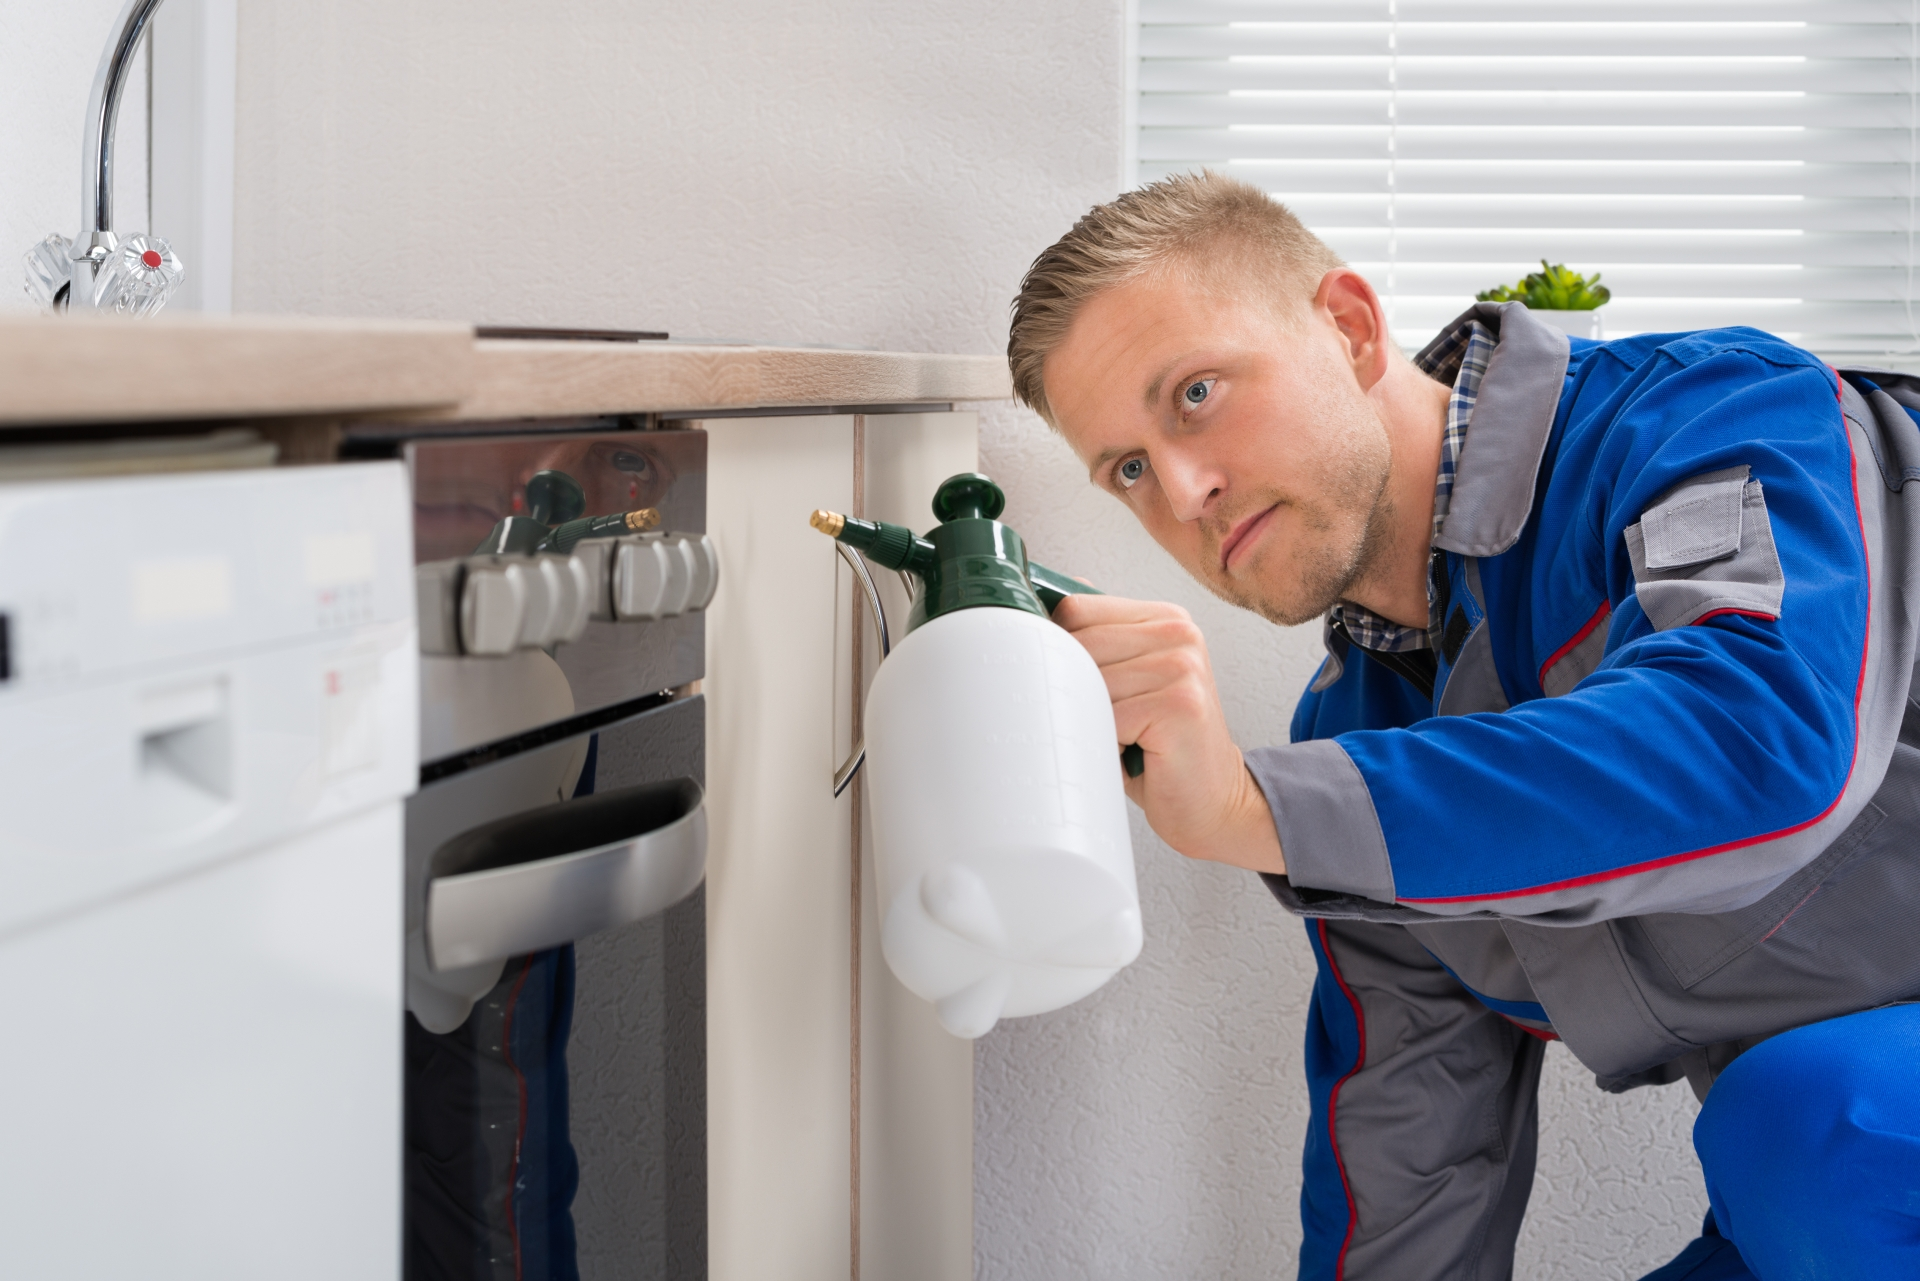 Pest Inspection, Pest Control in Hither Green, SE13. Call Now 020 8166 9746